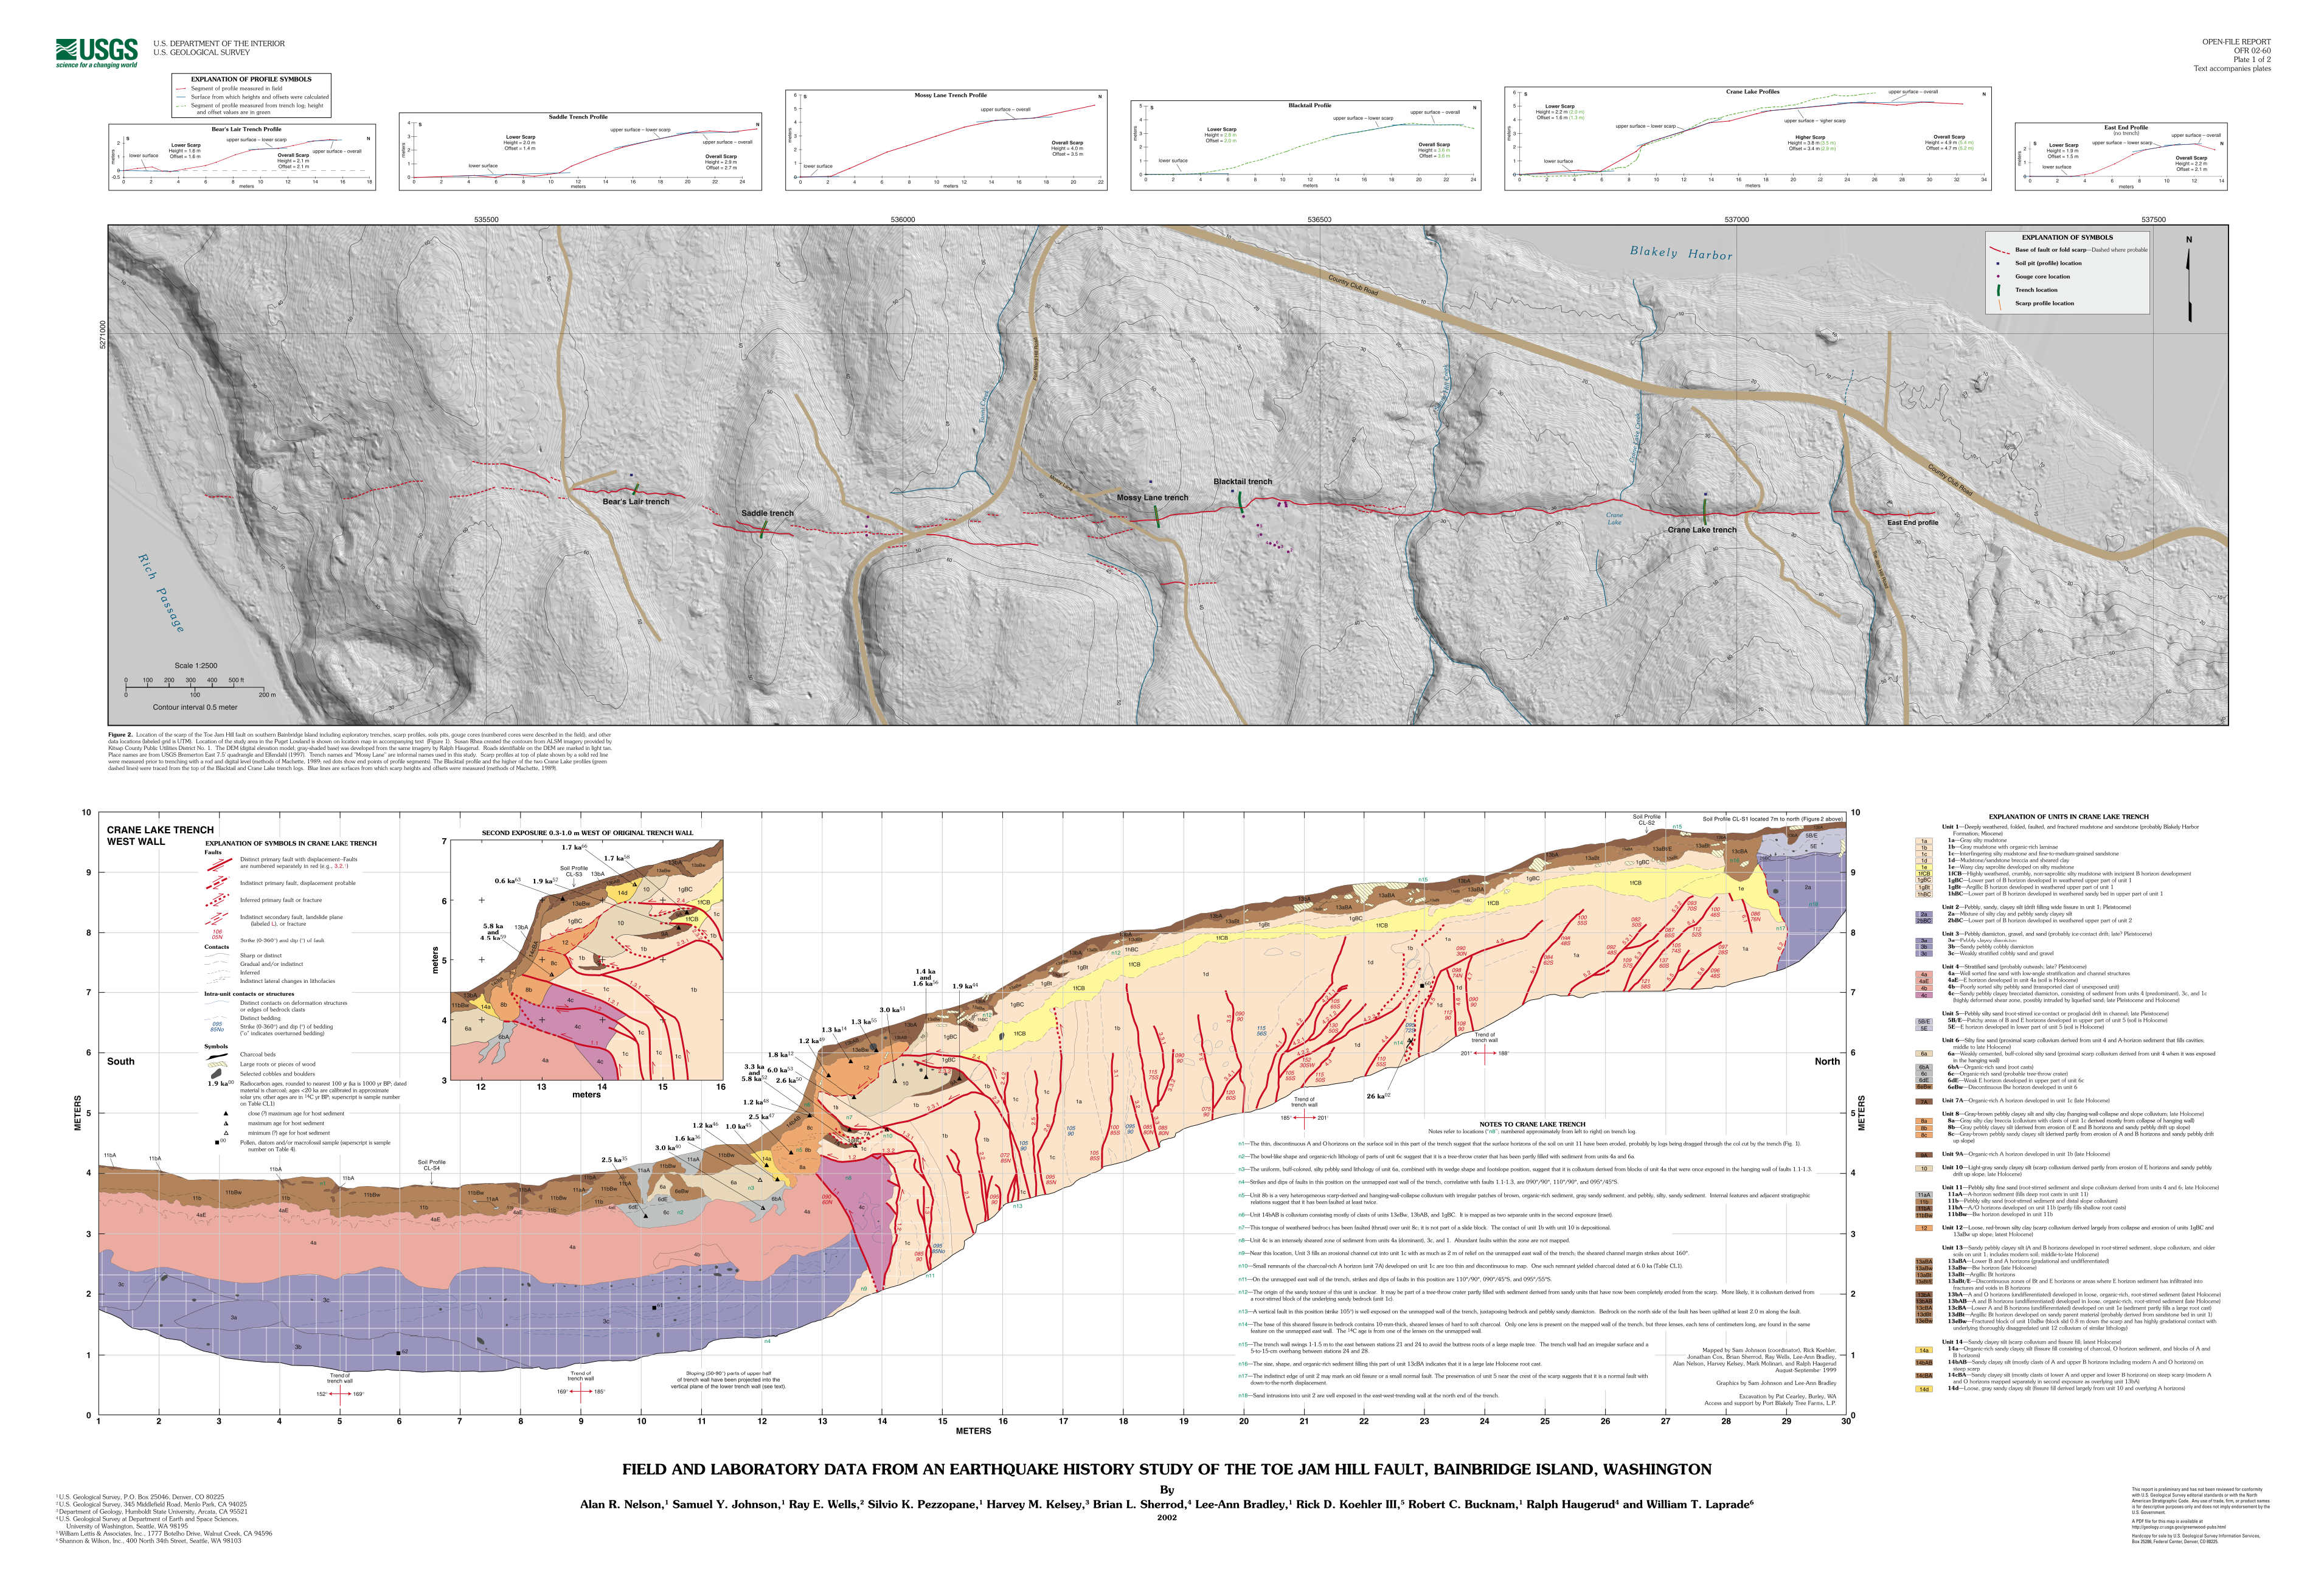 Log of west wall of Toe Jam Hill trench showing the fault scarp (Figure 6-10) and several fault strands with evidence of additional earthquakes besides the event 1100 years ago.